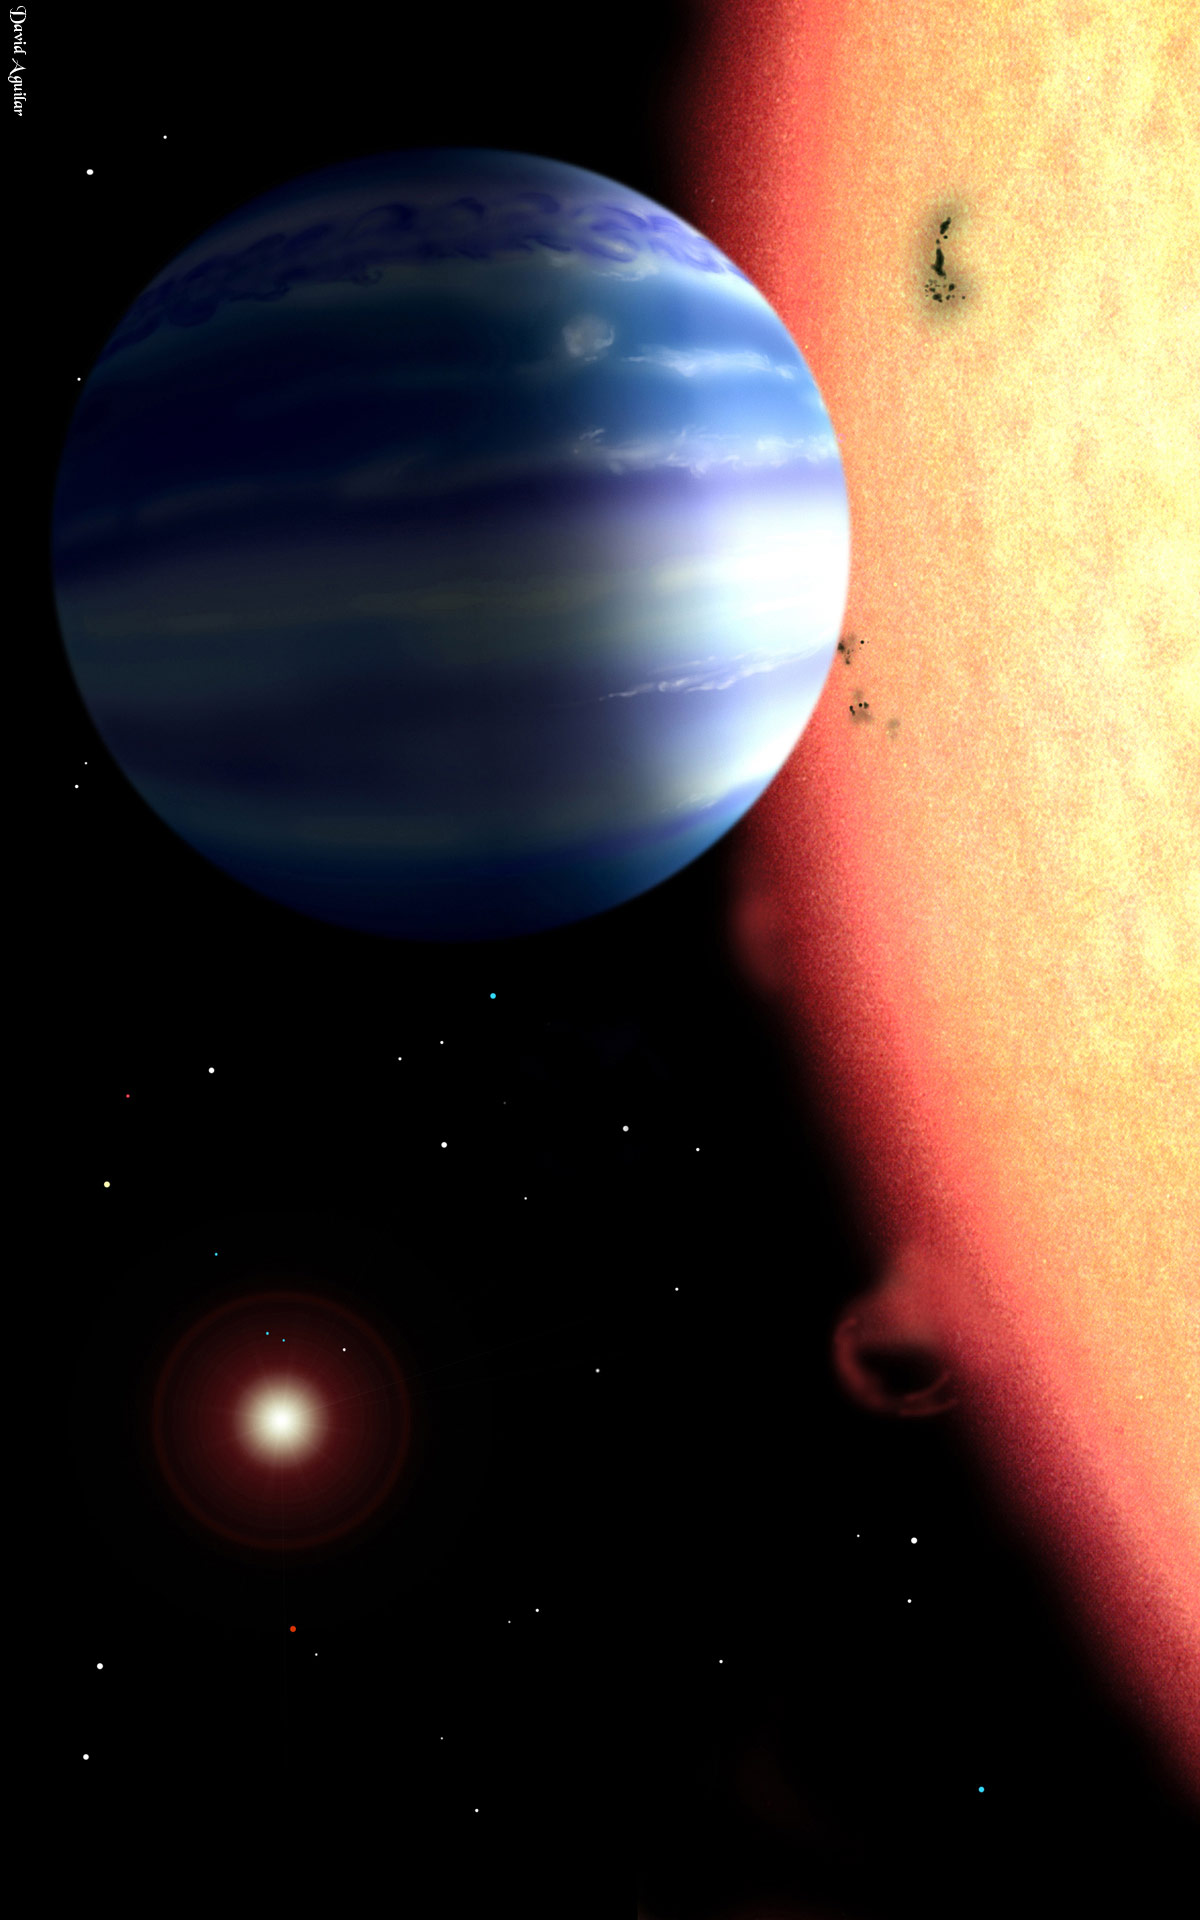 extrasolar or exoplanet planet outside the Finding exoplanets isn't easy, but in late 2016, astronomers discovered the closest one yet proxima centauri is an exoplanet that orbits within the habitable zone of the star closest to the sun.